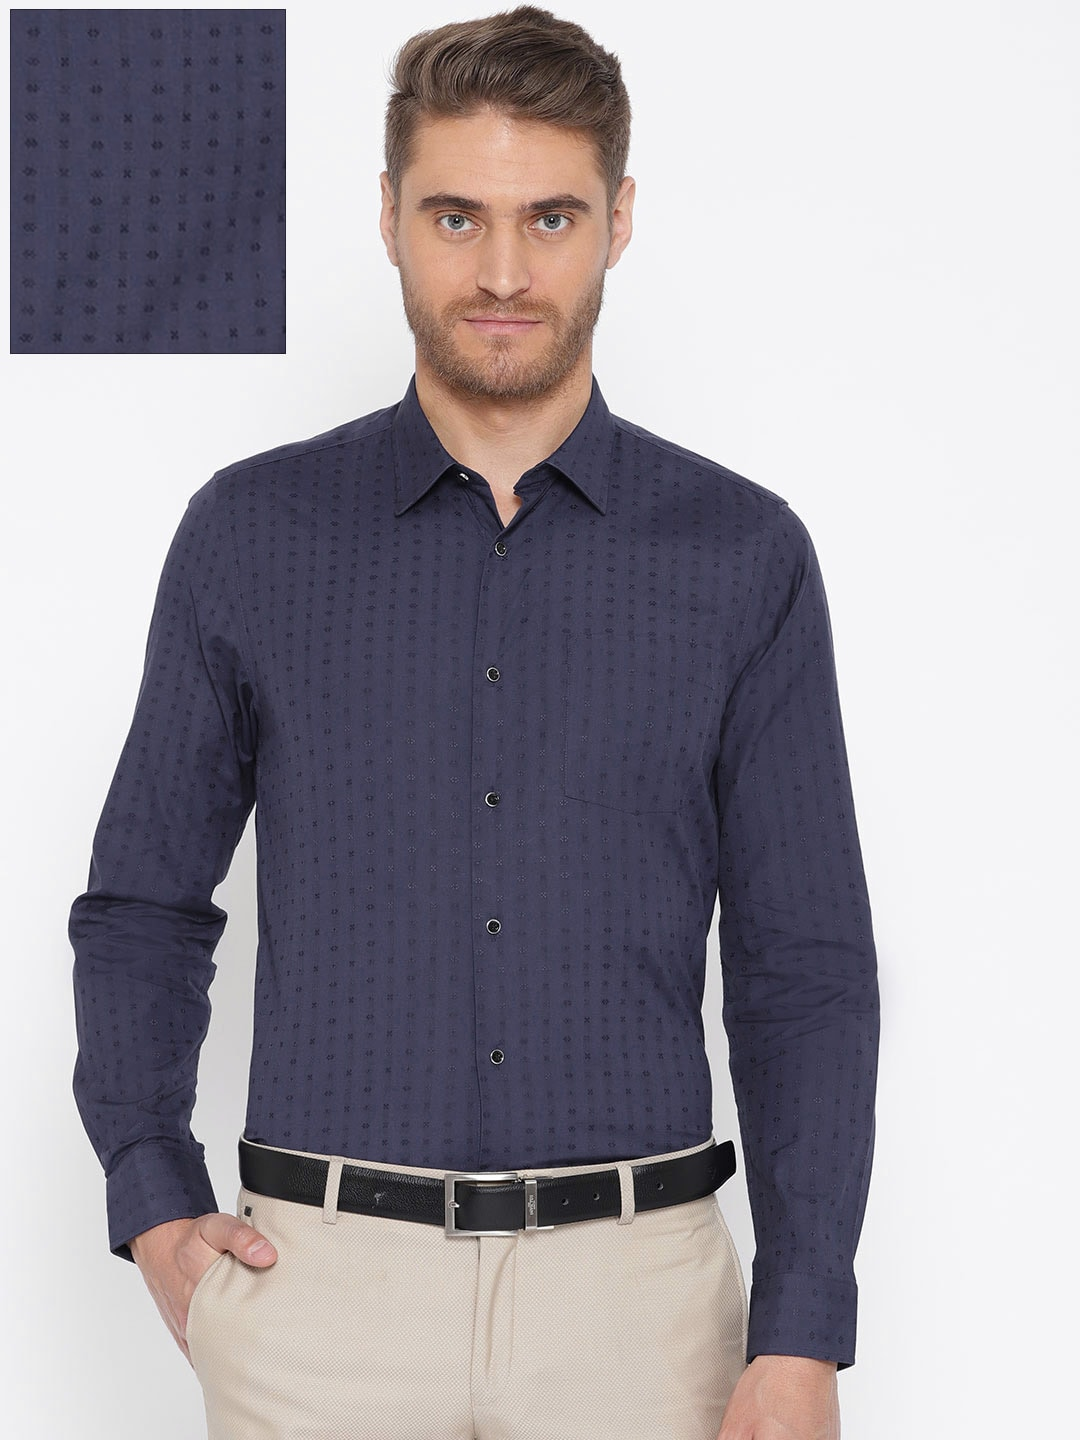 shirts that go with navy blue pants